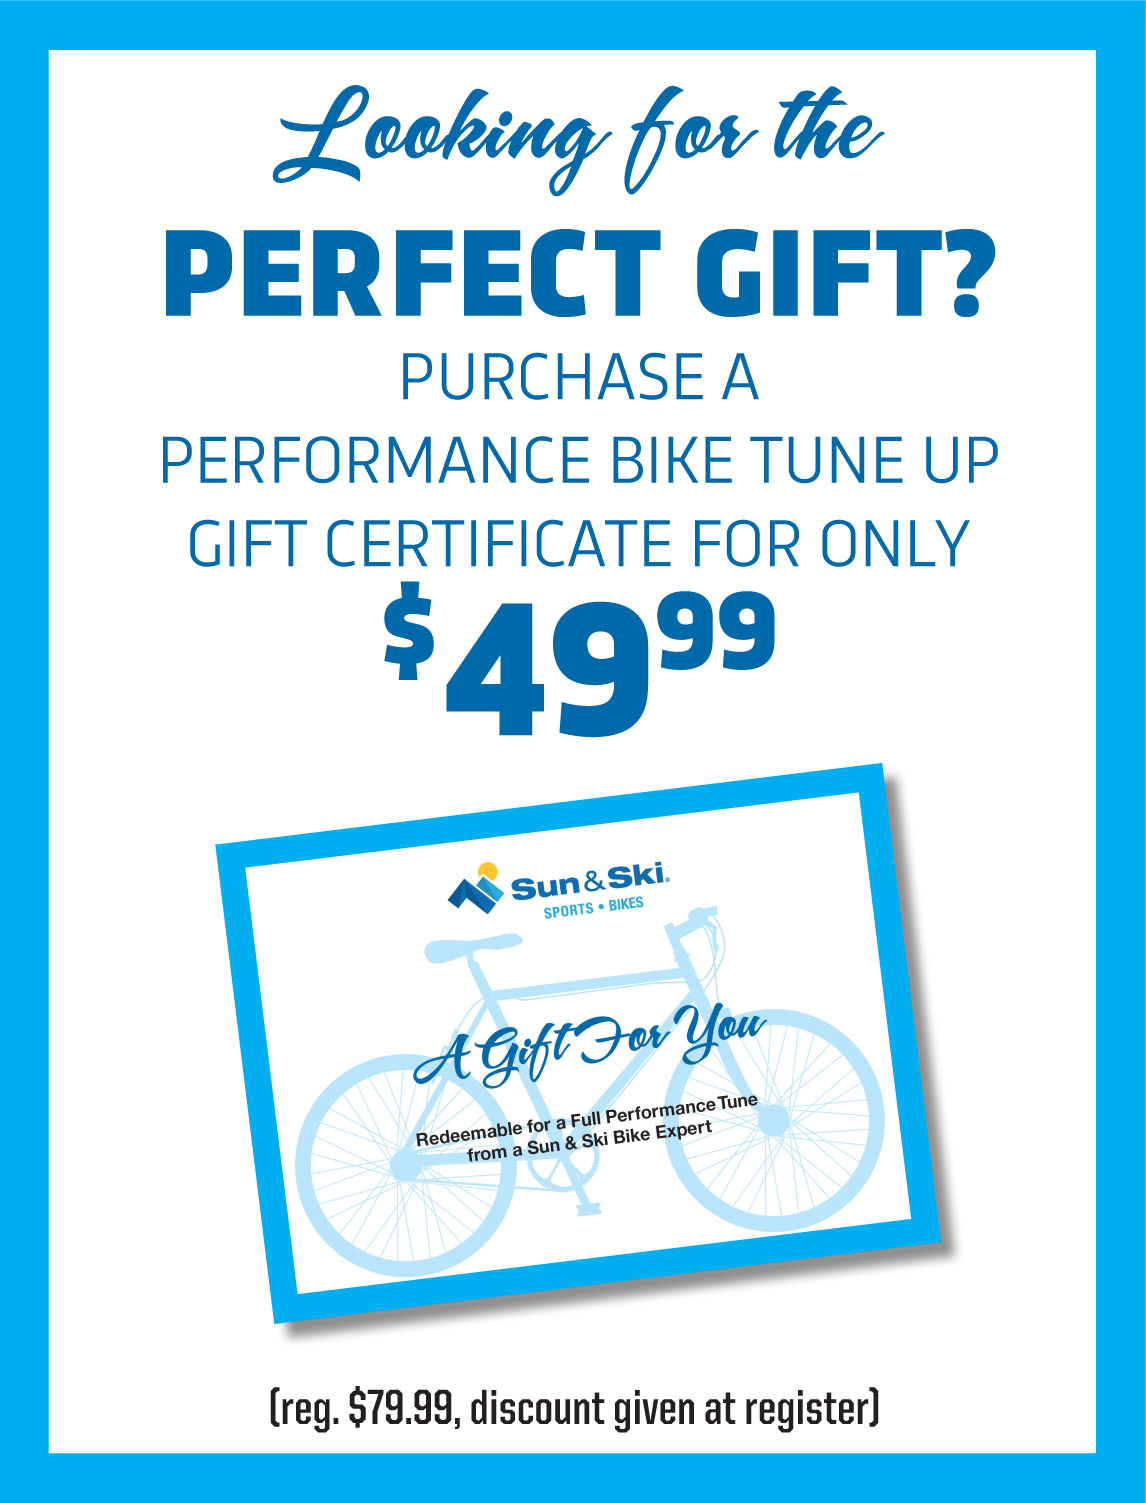 Performance Bike Tune Up Gift Certificate only $49.99